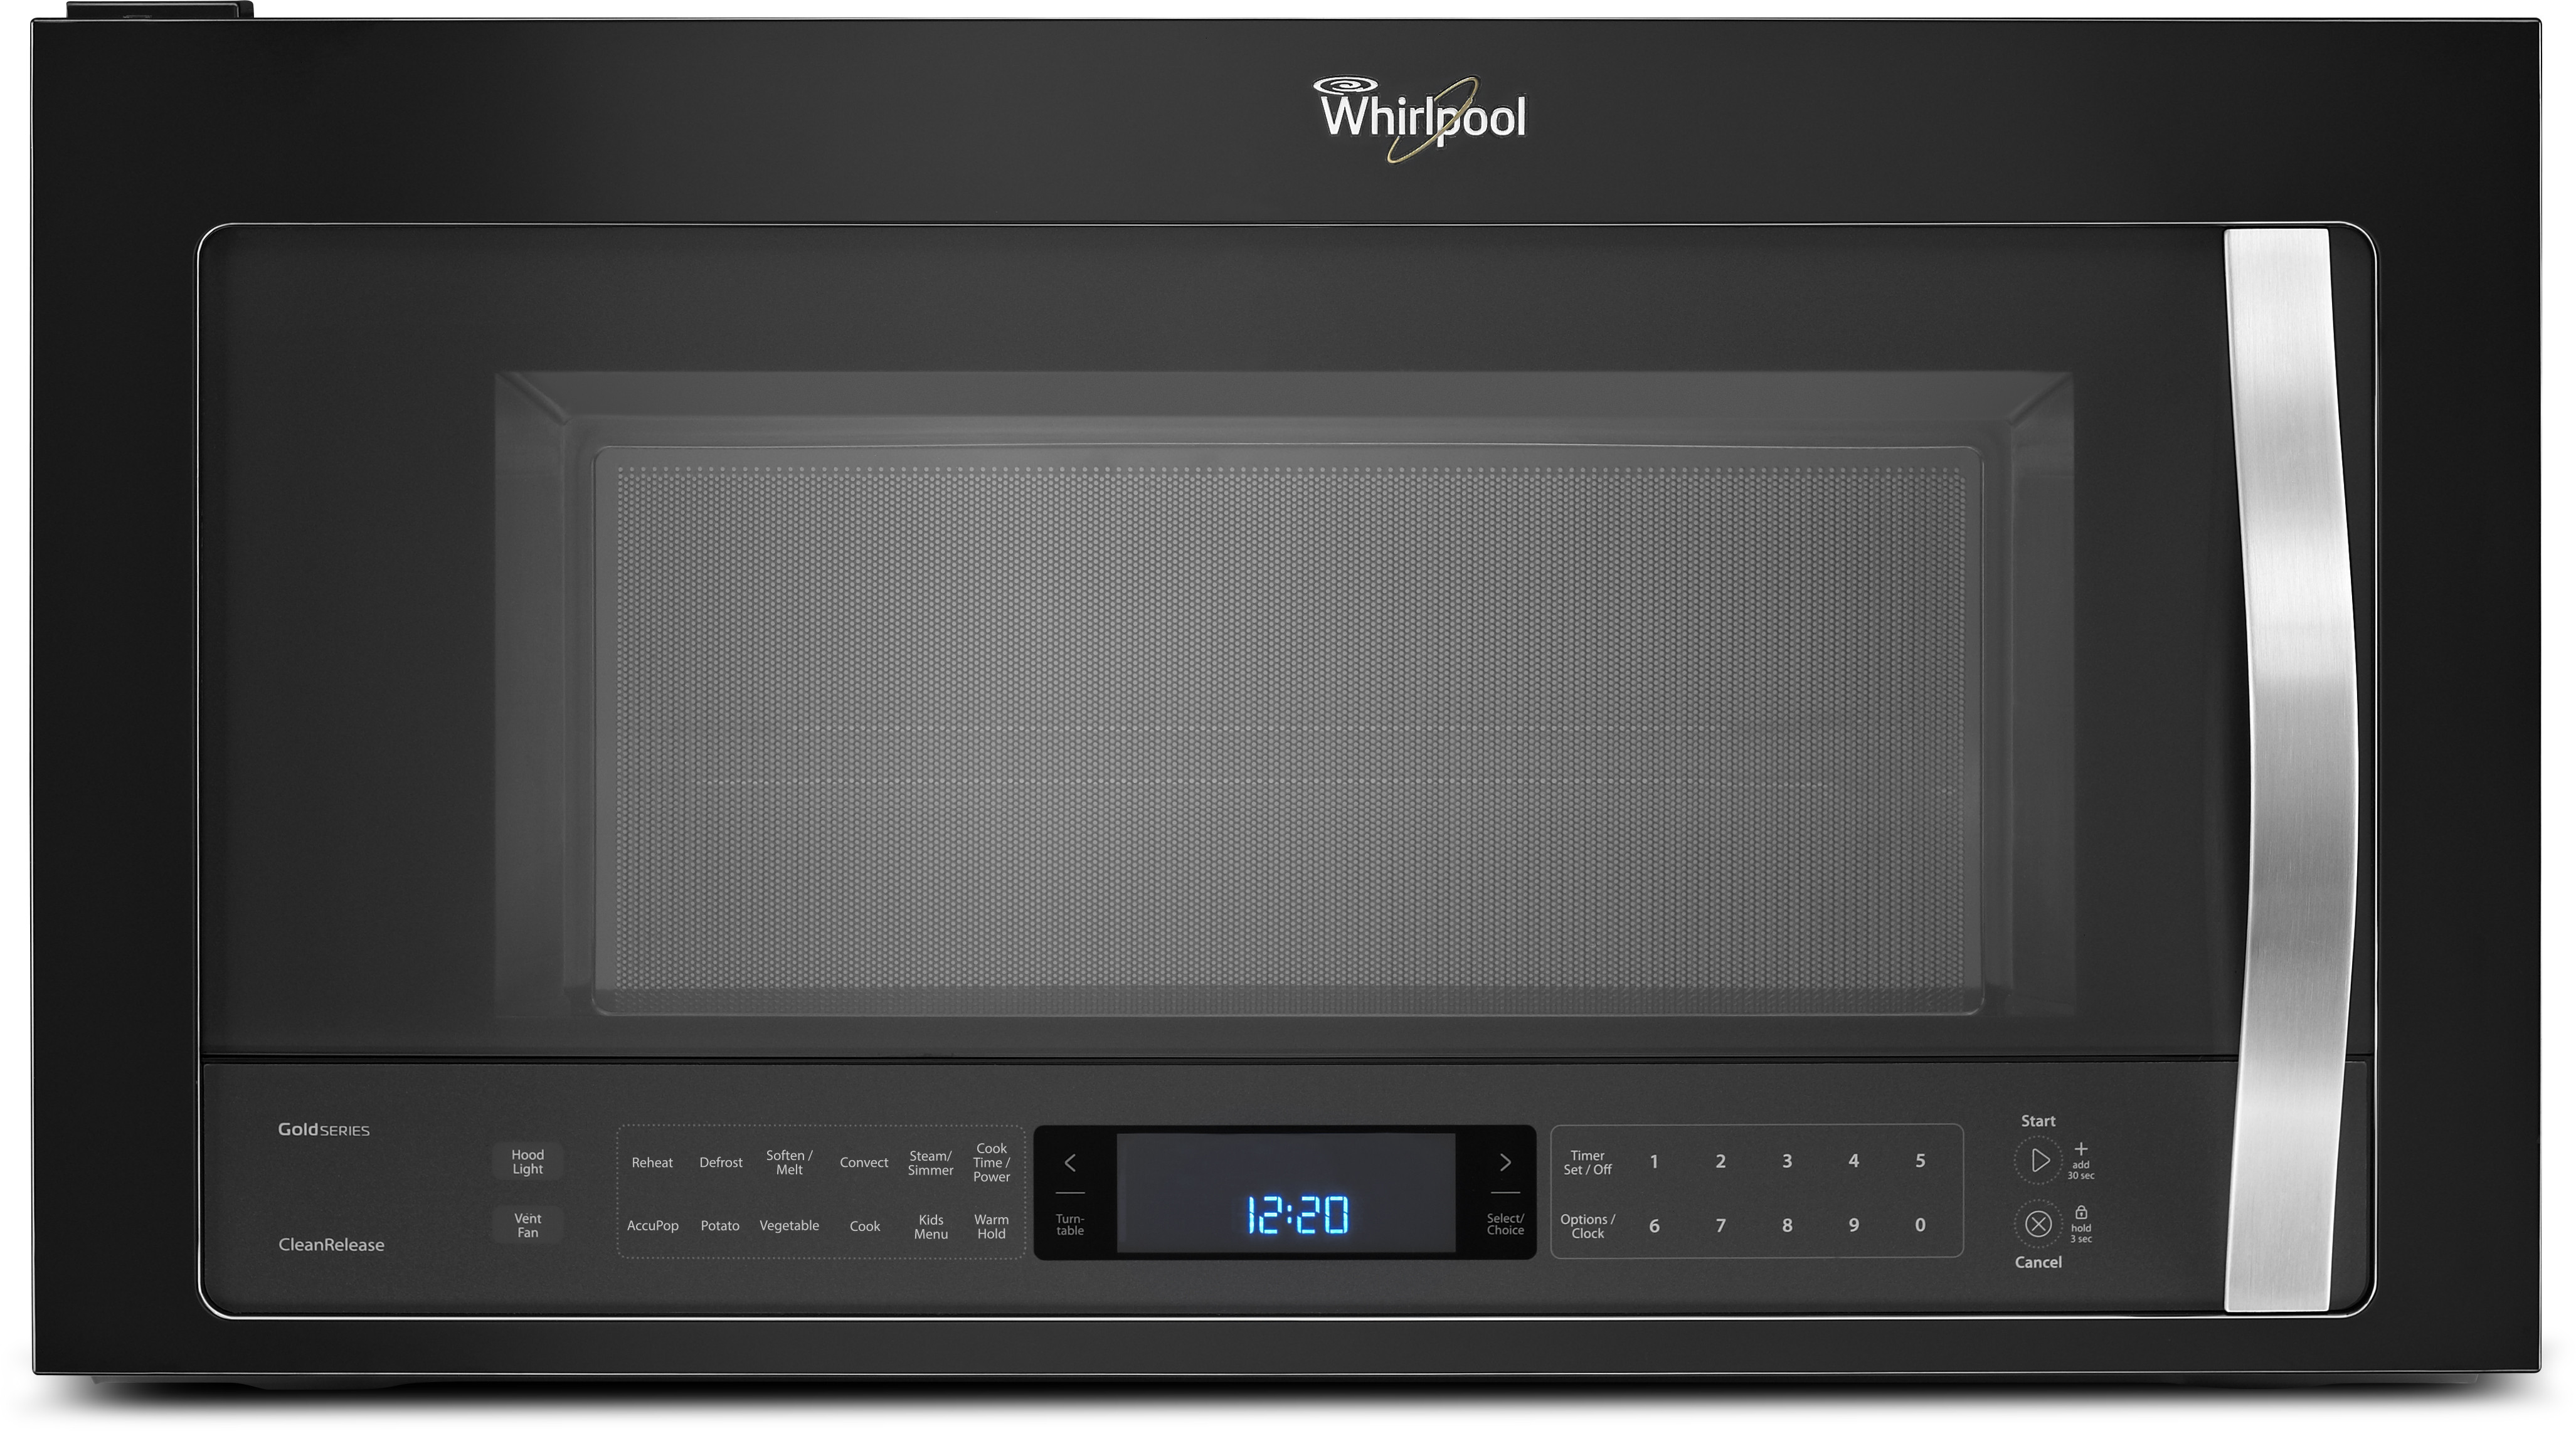 Whirlpool white ice over the range microwave - Whirlpool White Ice Over The Range Microwave 17